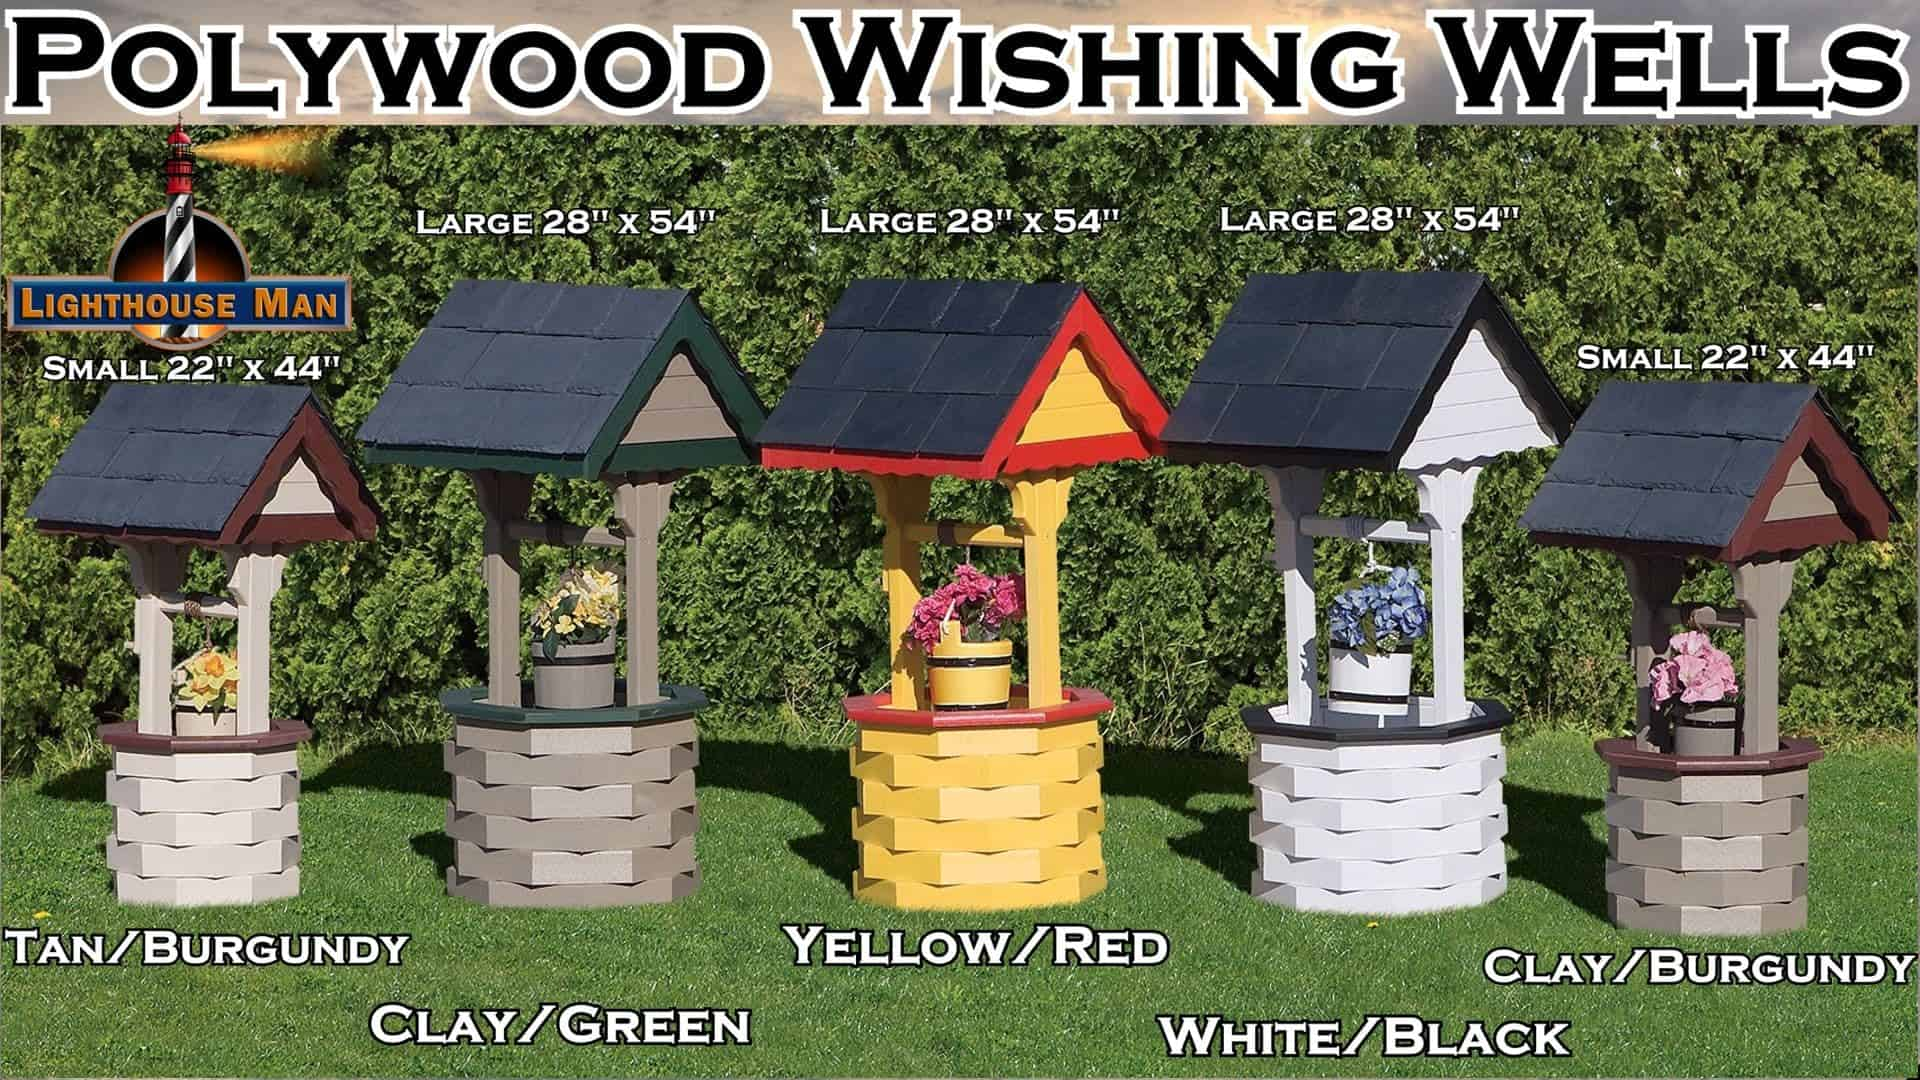 Decorative Ornamental Garden Wishing Wells - Polywood Wishing Wells